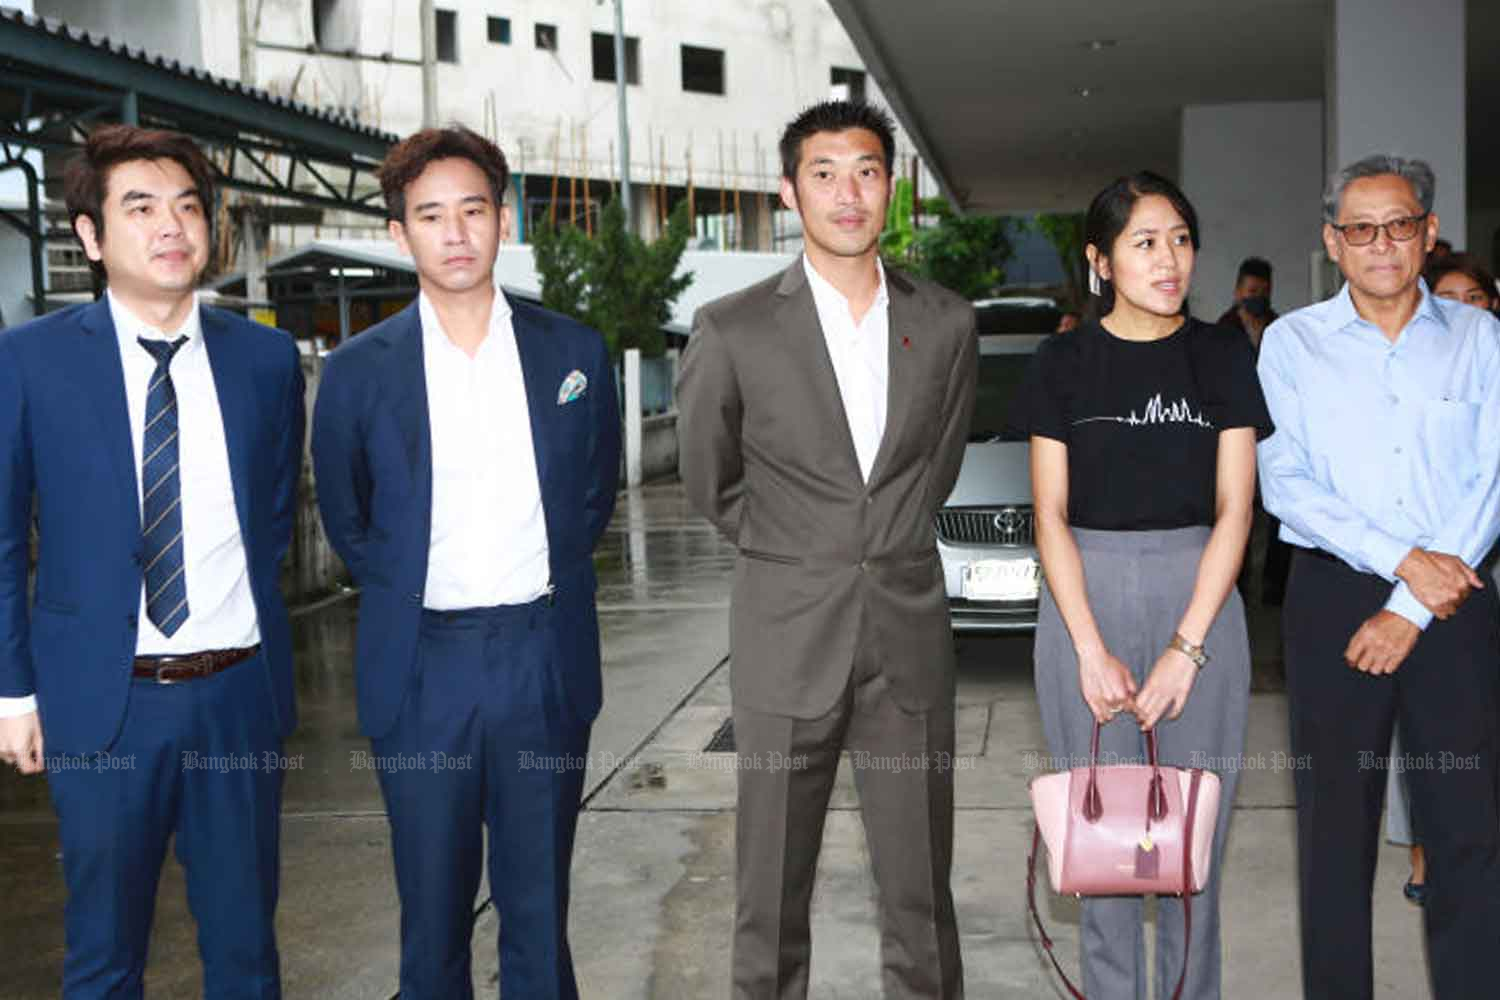 From left, Piyabutr Saengkanokkul, Pita Limjaroenrat, Thanathorn Juangroongruangkit, Pannika Wanich and Pairattachote Chantarakajon, at the Office of Summary Litigation Region 6 in Pathumwan district, Bangkok, to hear the indictment decision on Thursday. (Photo: Somchai Poomlard)